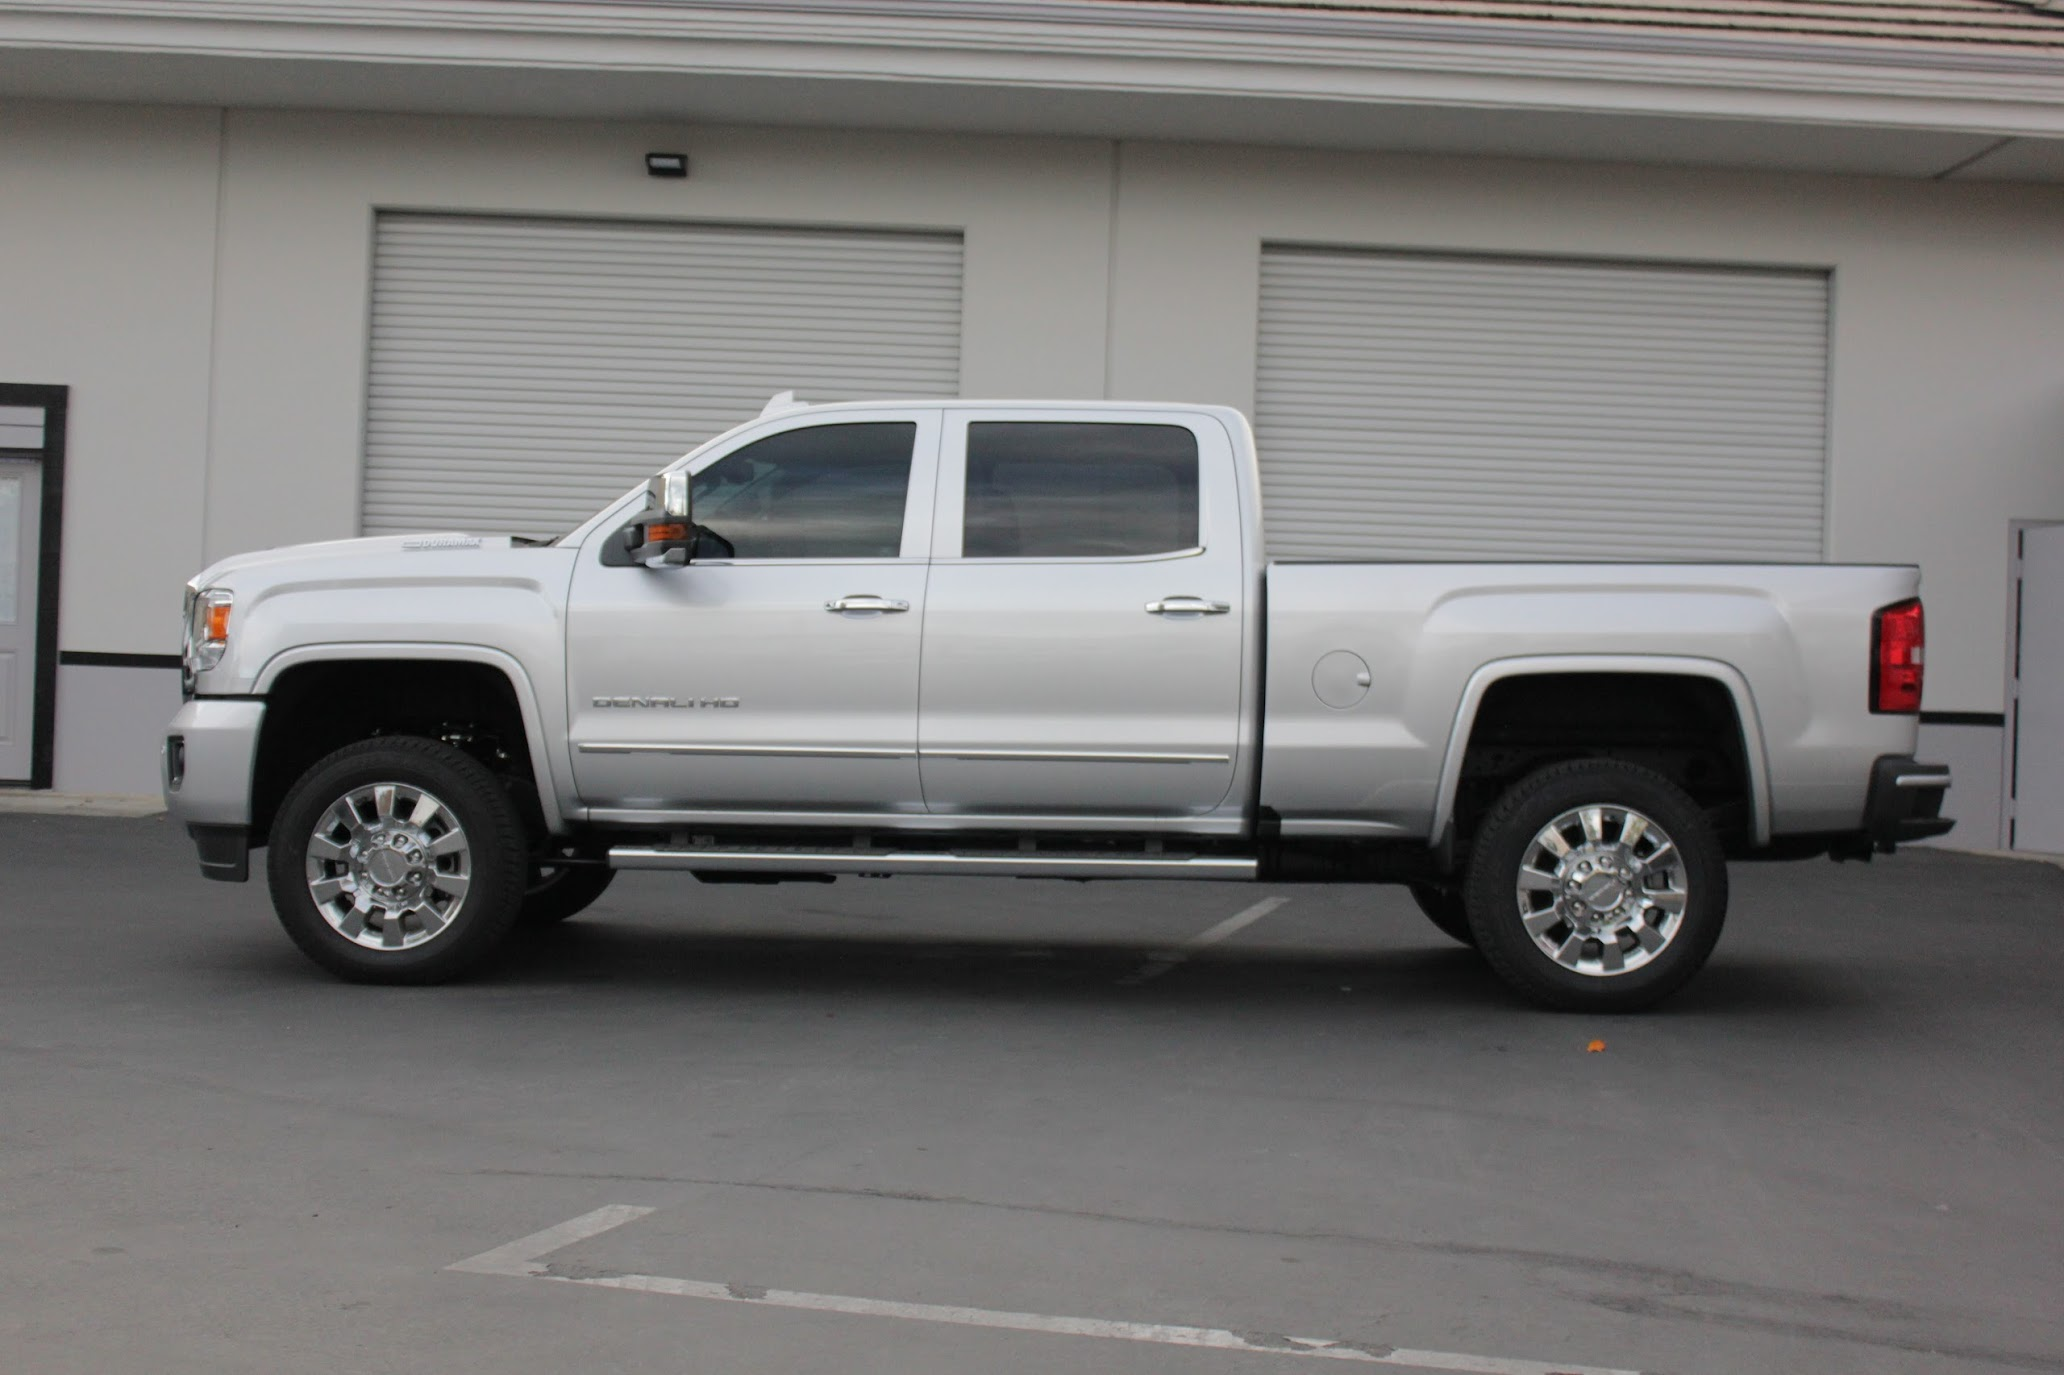 Gmc Vs Chevy >> Leveled 2015+ thread - Page 96 - Chevy and GMC Duramax Diesel Forum